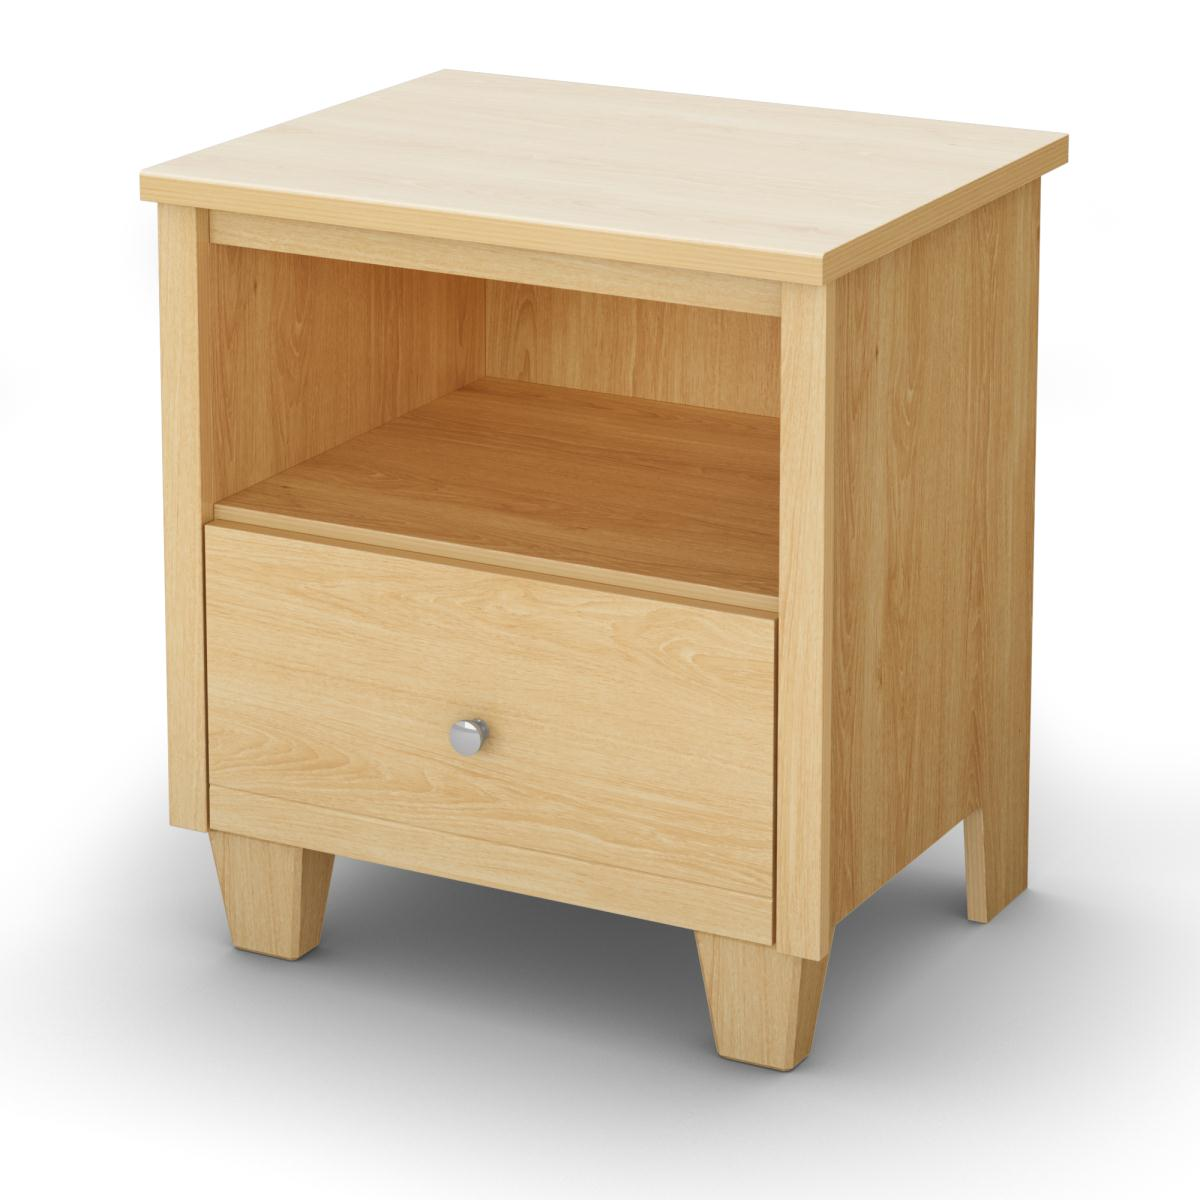 South Shore Clever Room Night Stand - Natural Maple